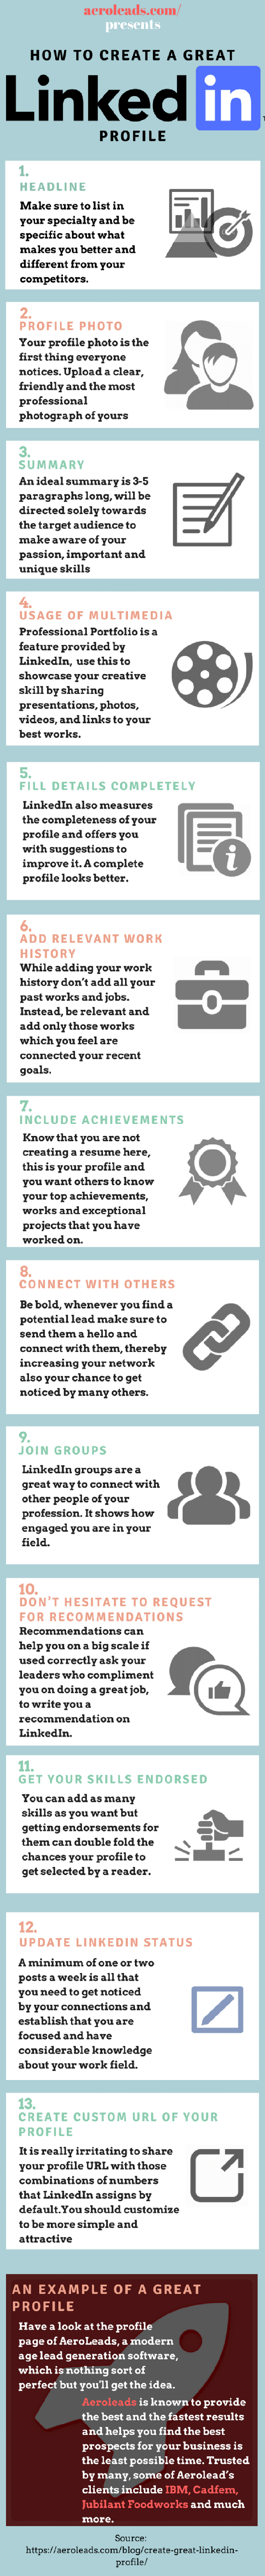 How to Create a Great LinkedIn Profile #infographic http://bit.ly/2mvUxoF